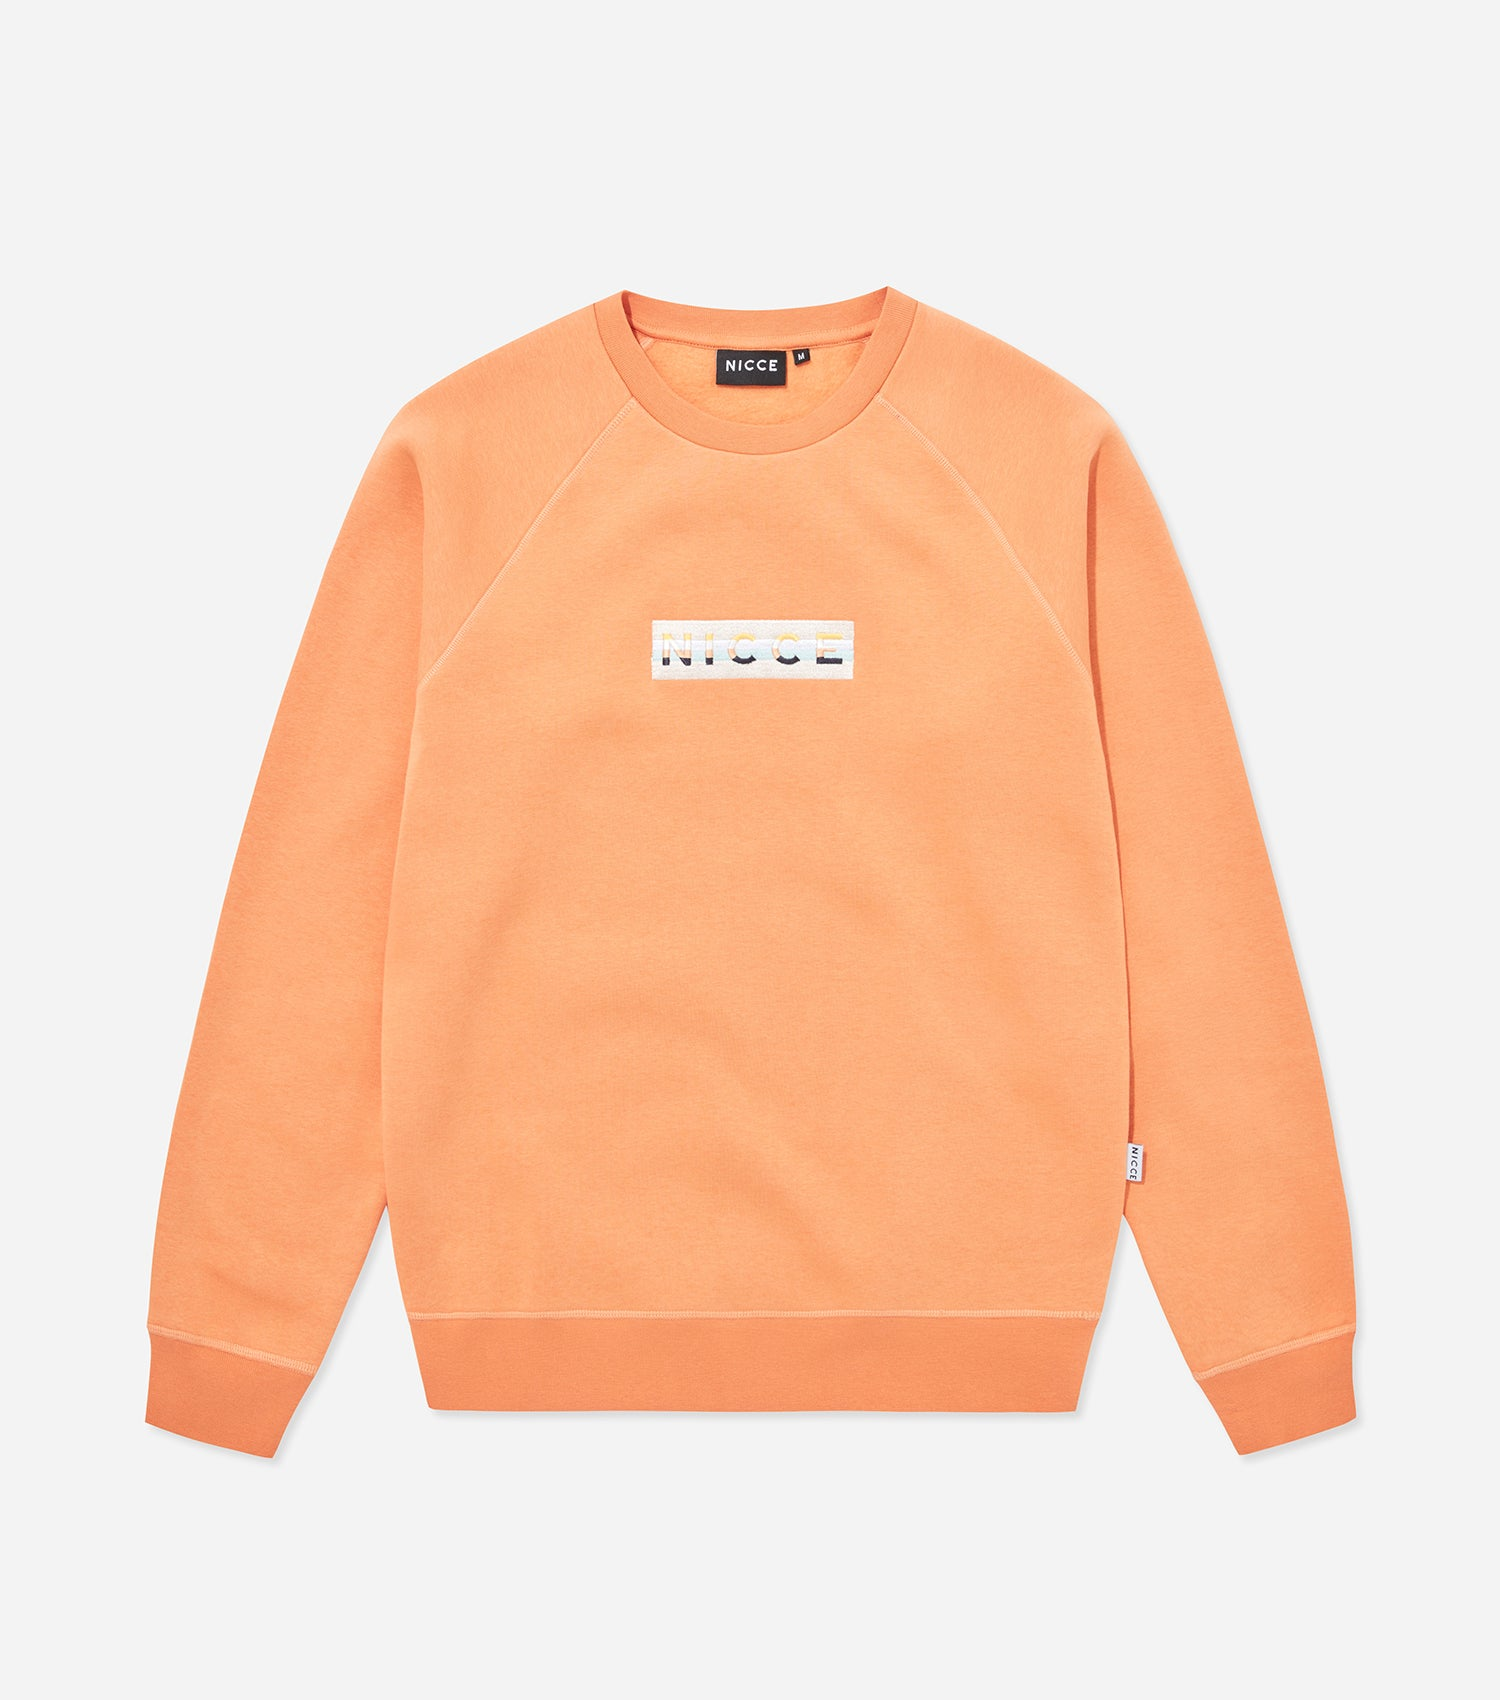 Hyam sweatshirt in coral. Featuring 90s five colour box embroidery logo,  crew neck and 44c50b9fdb5e